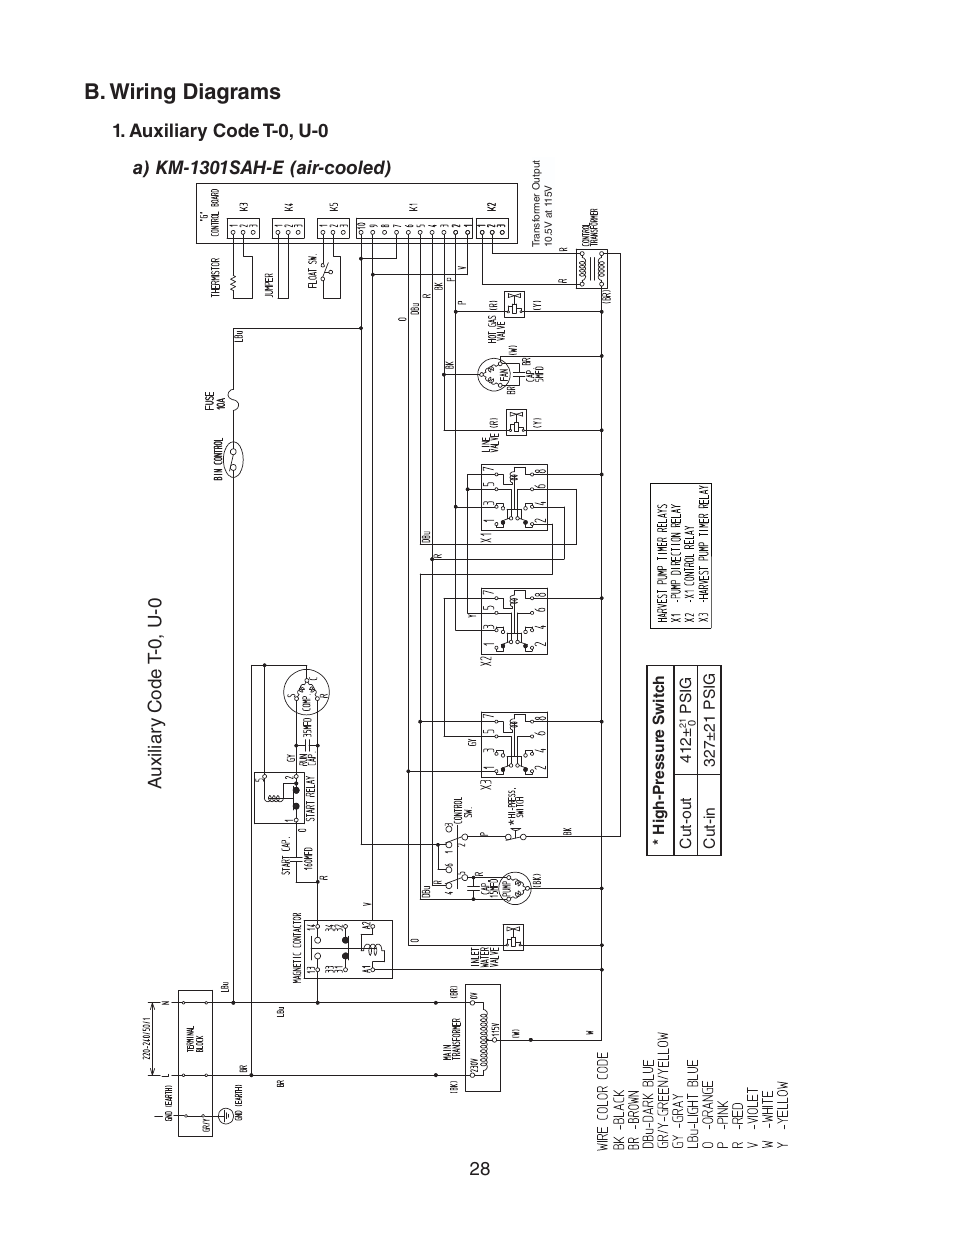 hight resolution of b wiring diagrams auxiliary code t 0 u 0 a km 1301sah